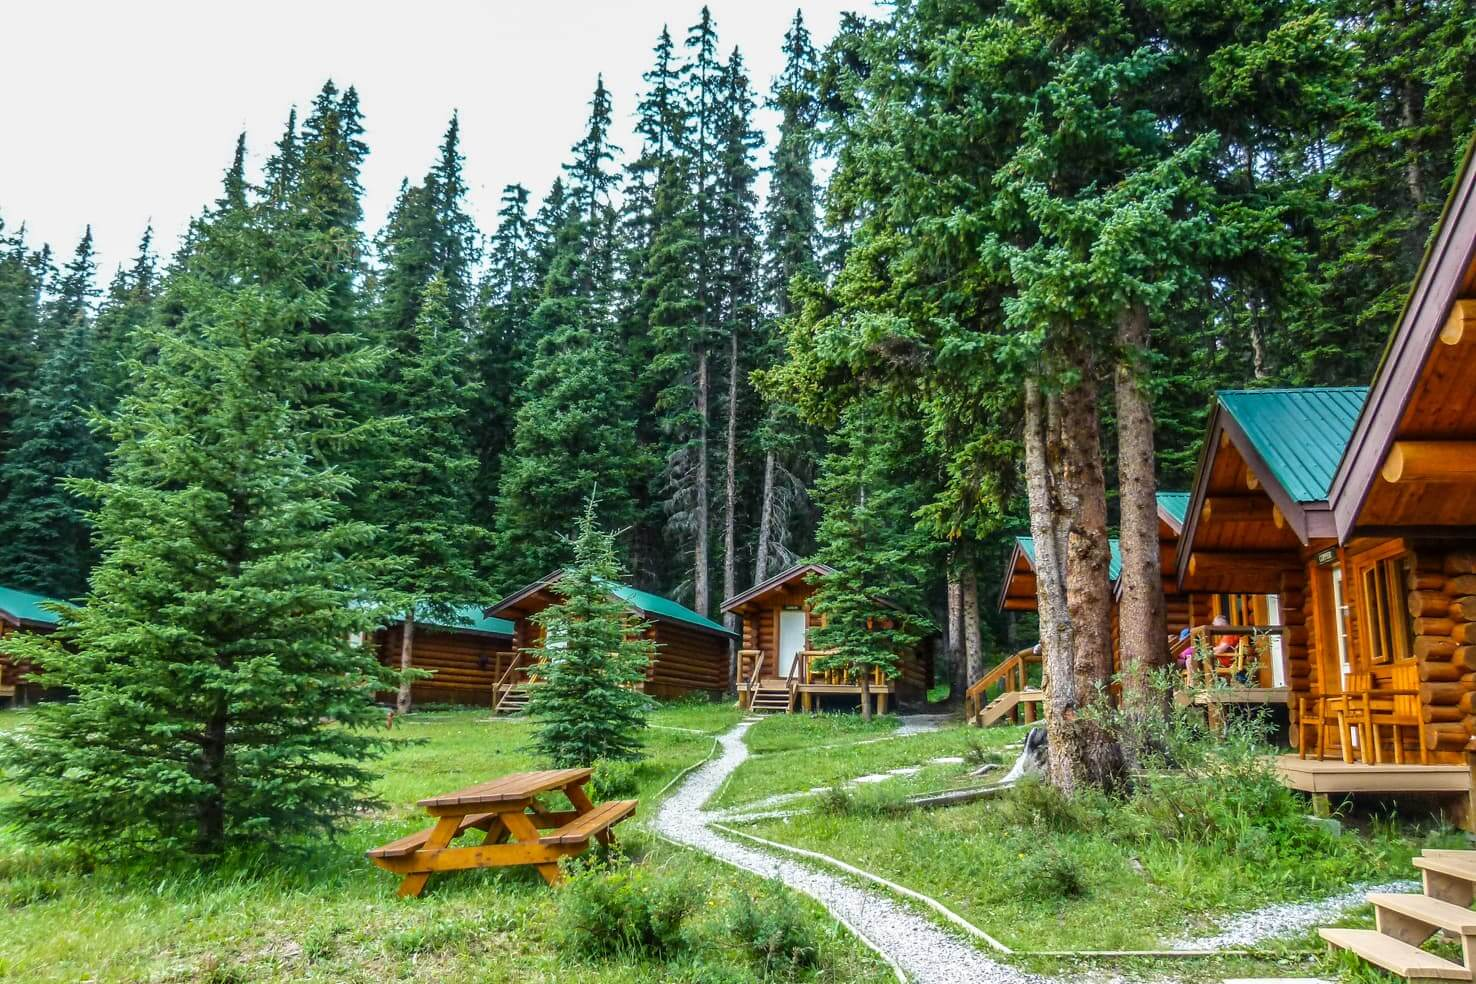 100 Things To Do In Banff National Park Canada